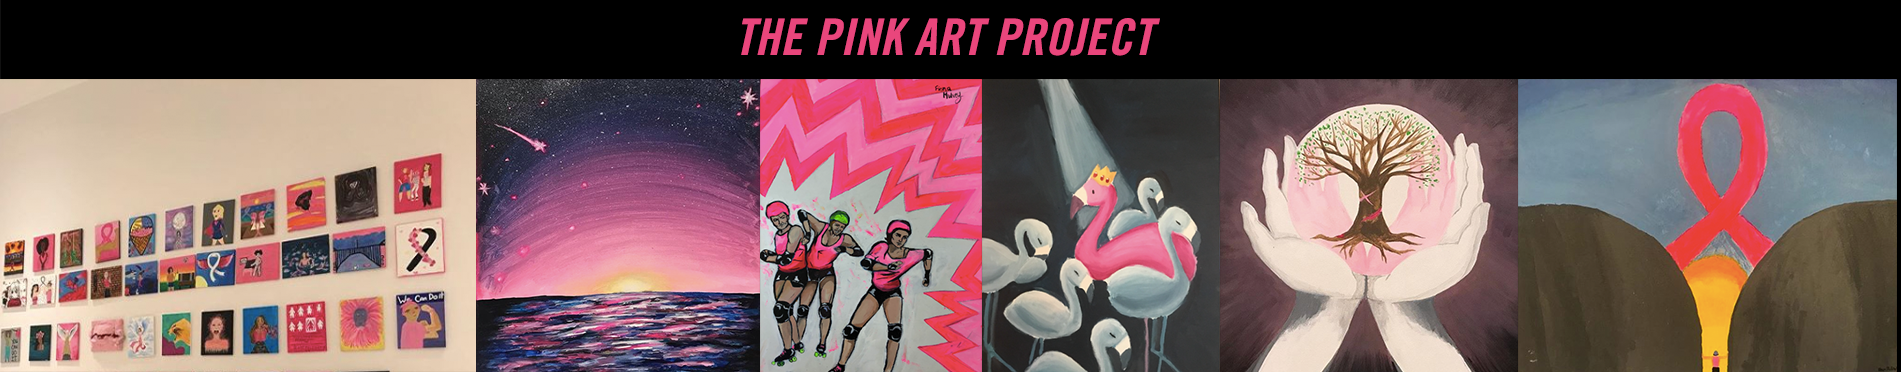 Pink Art Project Banner 3